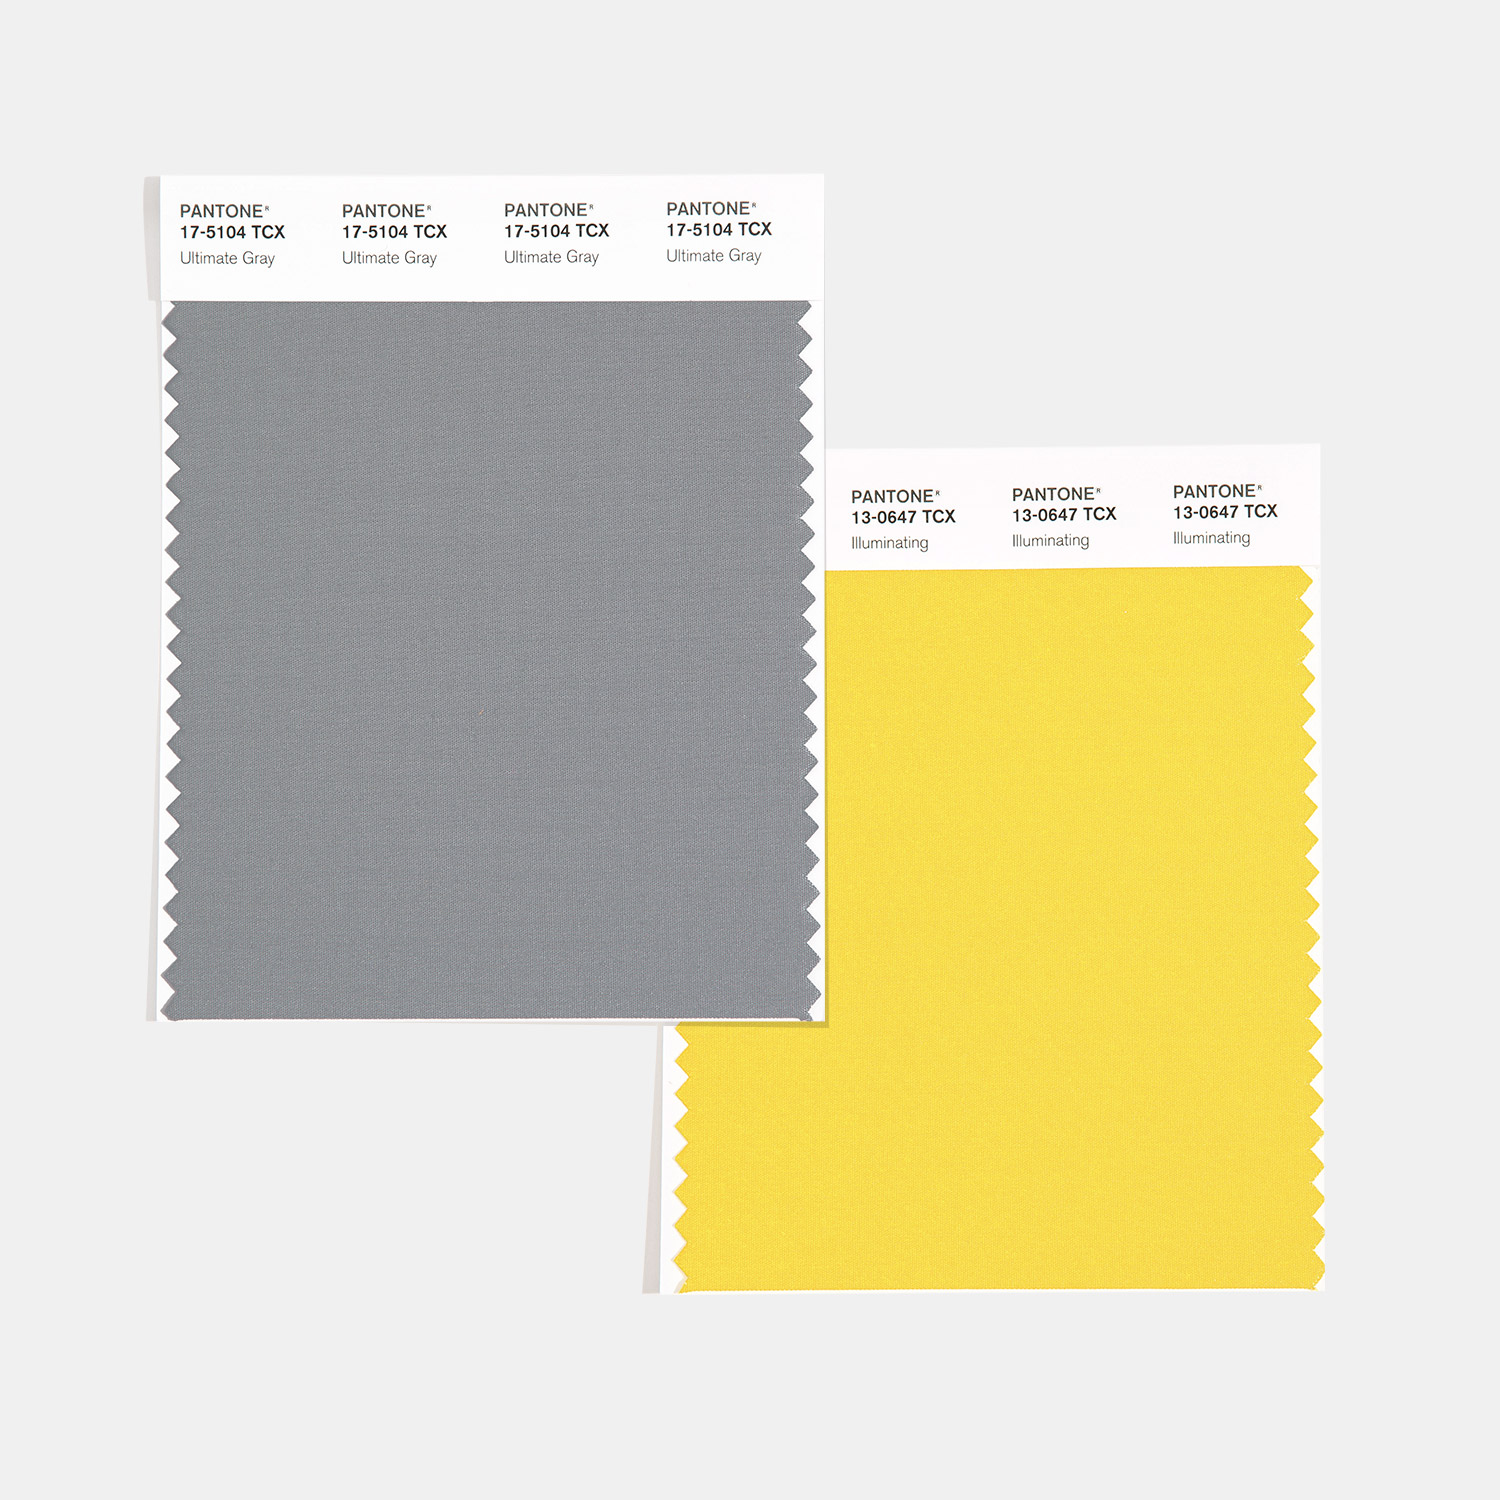 https://static.pantone.ru/public/Rk4jfRjxipcVXGy3VT6qm3/SWCD-TCX-color-of-the-year-2021-ultimate-gray-illuminating.jpg